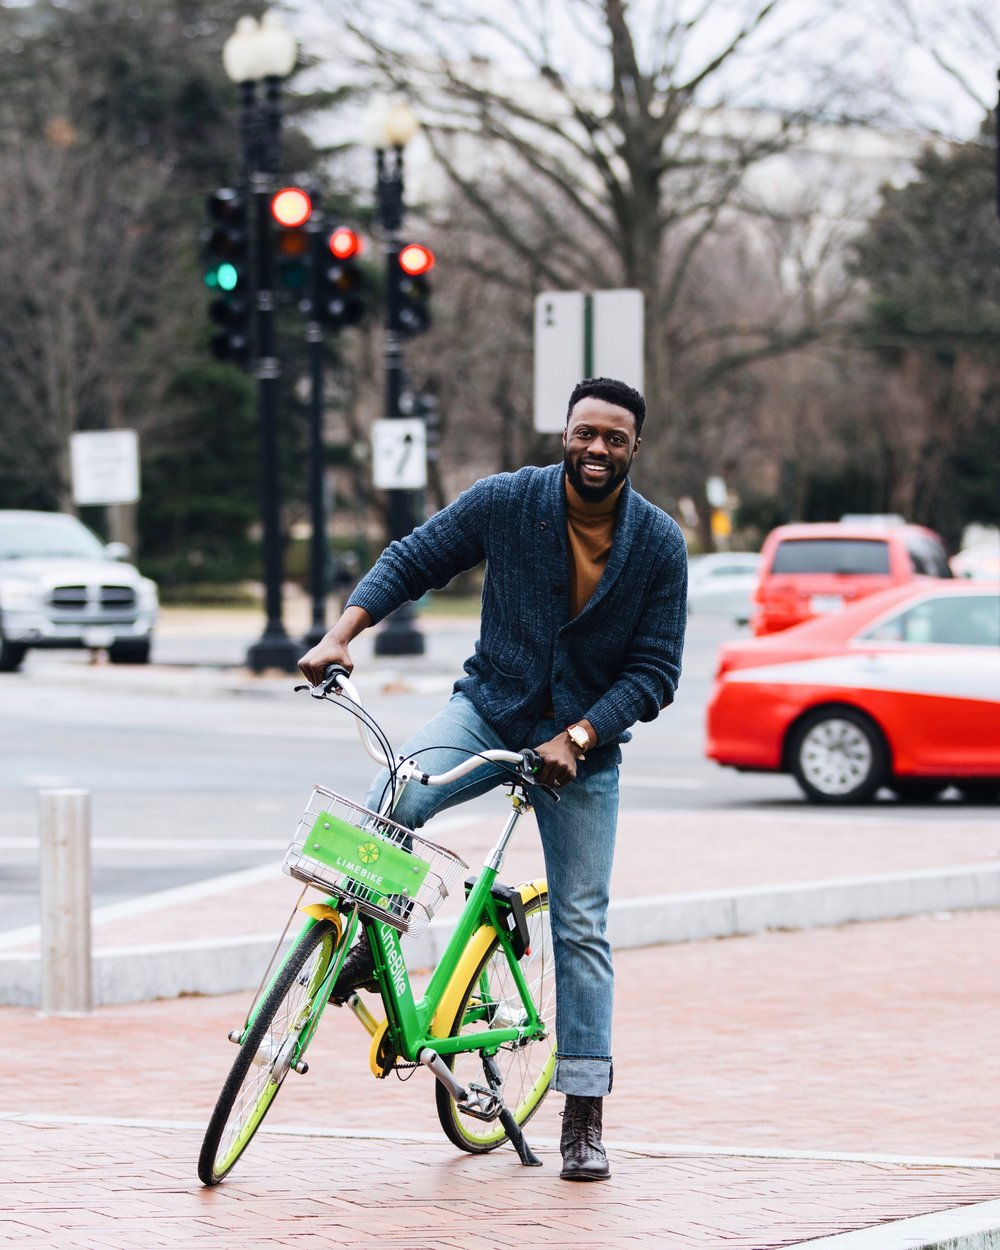 The Creative Gentleman riding  green Limebike in Washington, D.C. The Creative Gentleman was wearing blue J. Crew jeans, navy J. Crew cardigan with brown suede elbow patches, camel colored turtleneck, and brown leather watch. This image was taking for the Limebike Lime Nation campaign.